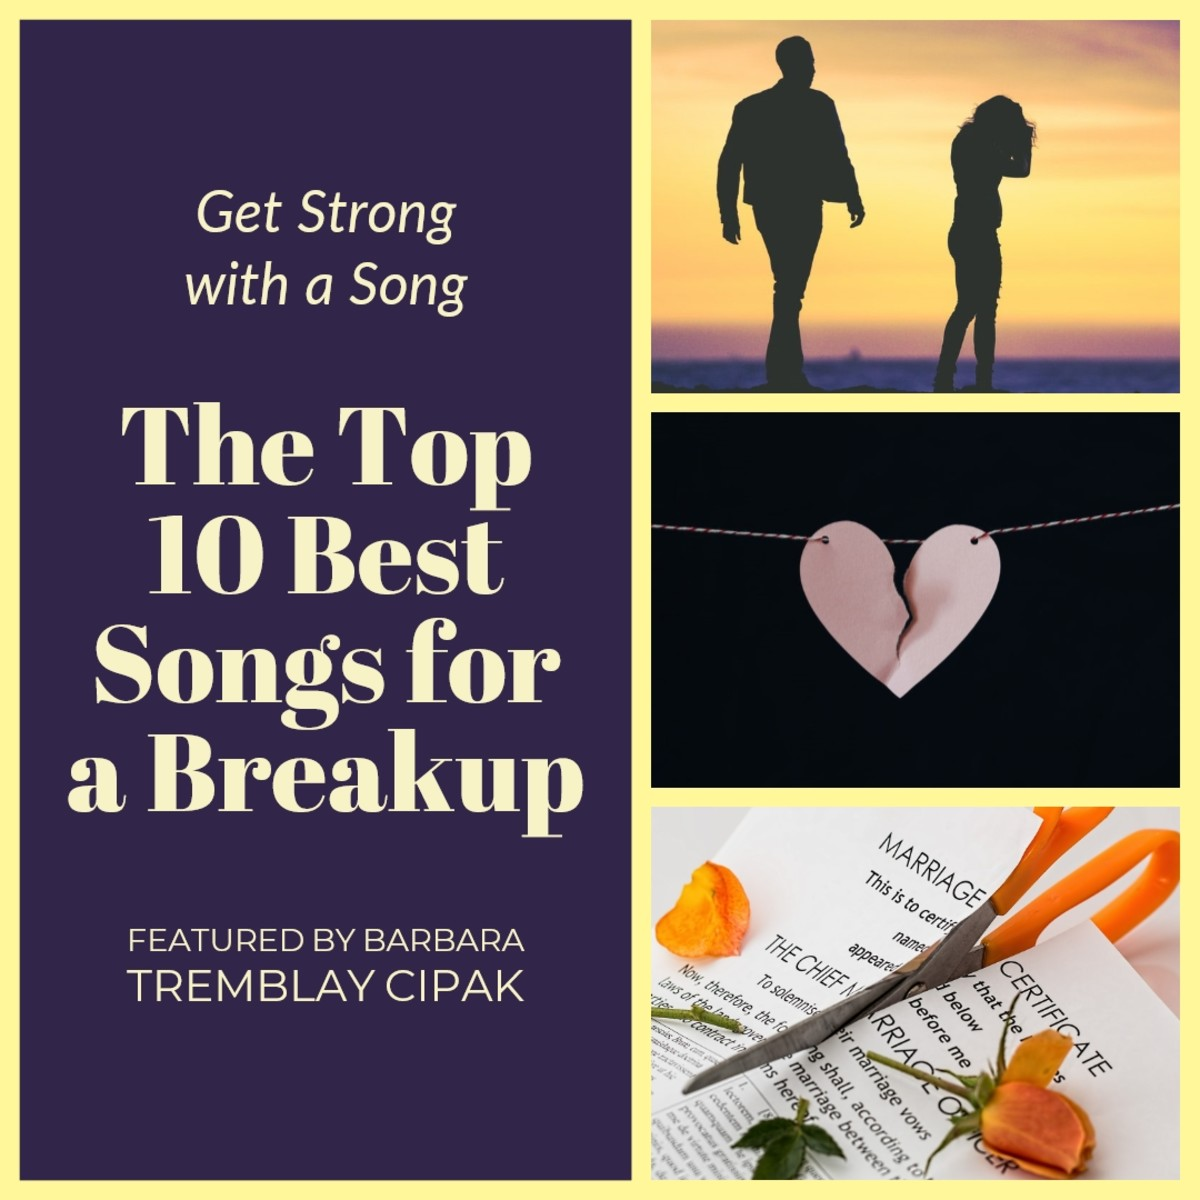 The Top 10 Best Songs for a Breakup (Collage Created by Barbara Tremblay Cipak).